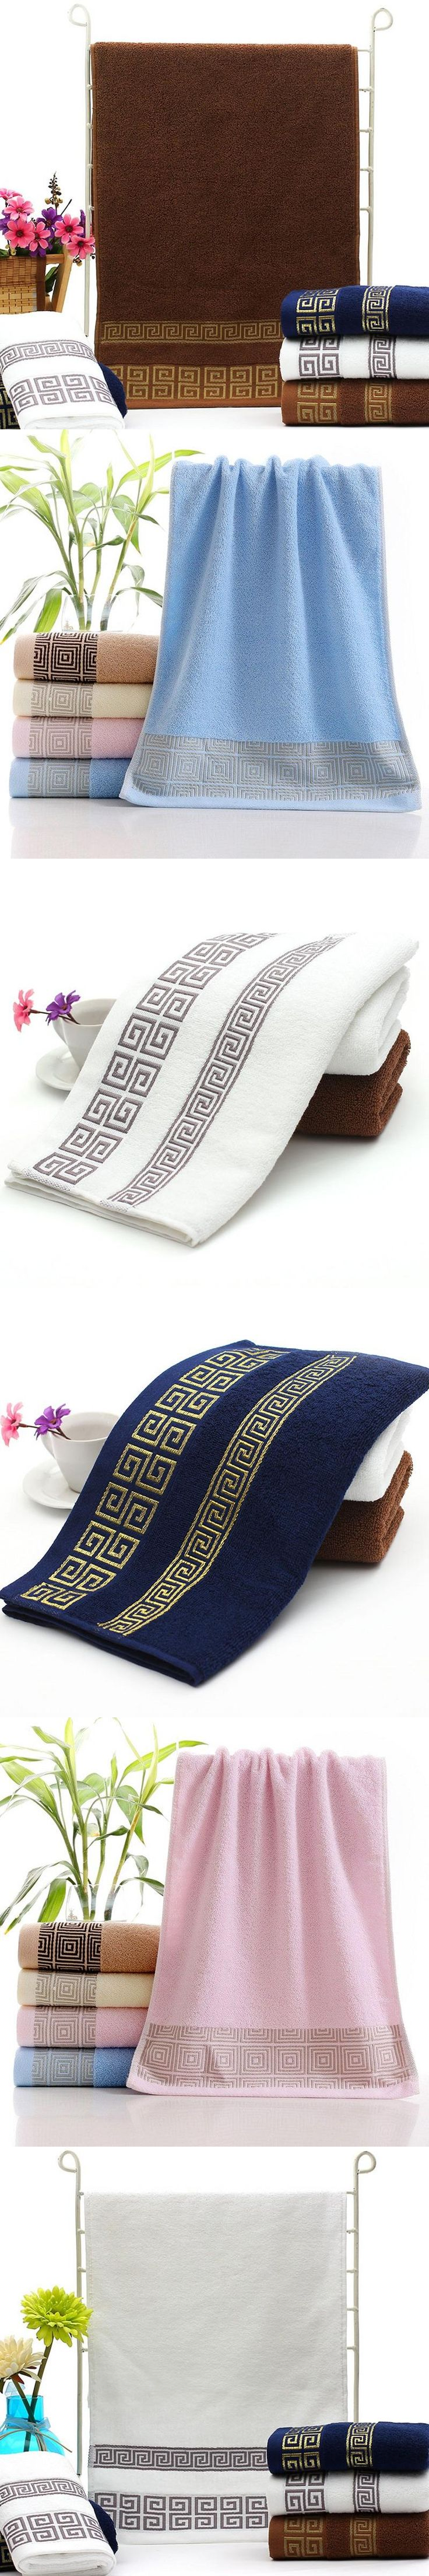 Towel Bamboo Beach Face Towels  high quality soft towel